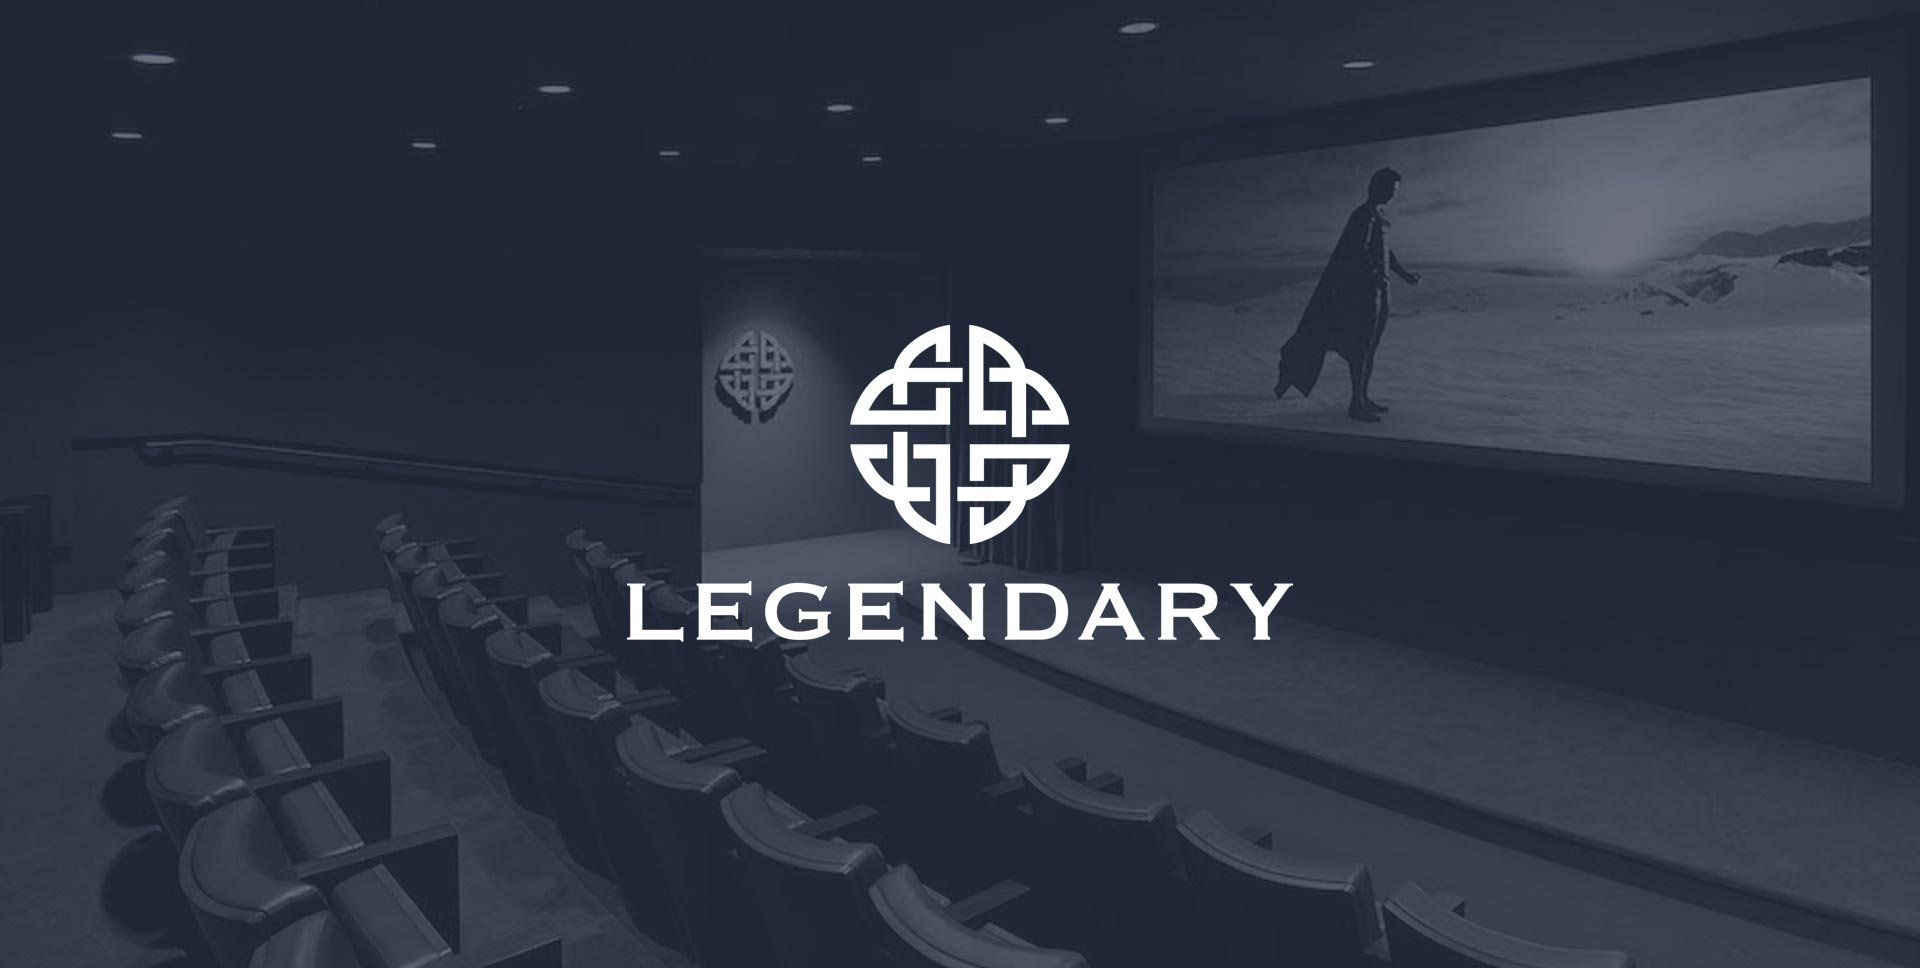 Legendary Pictures logo overlaid on a photo of a movie theater